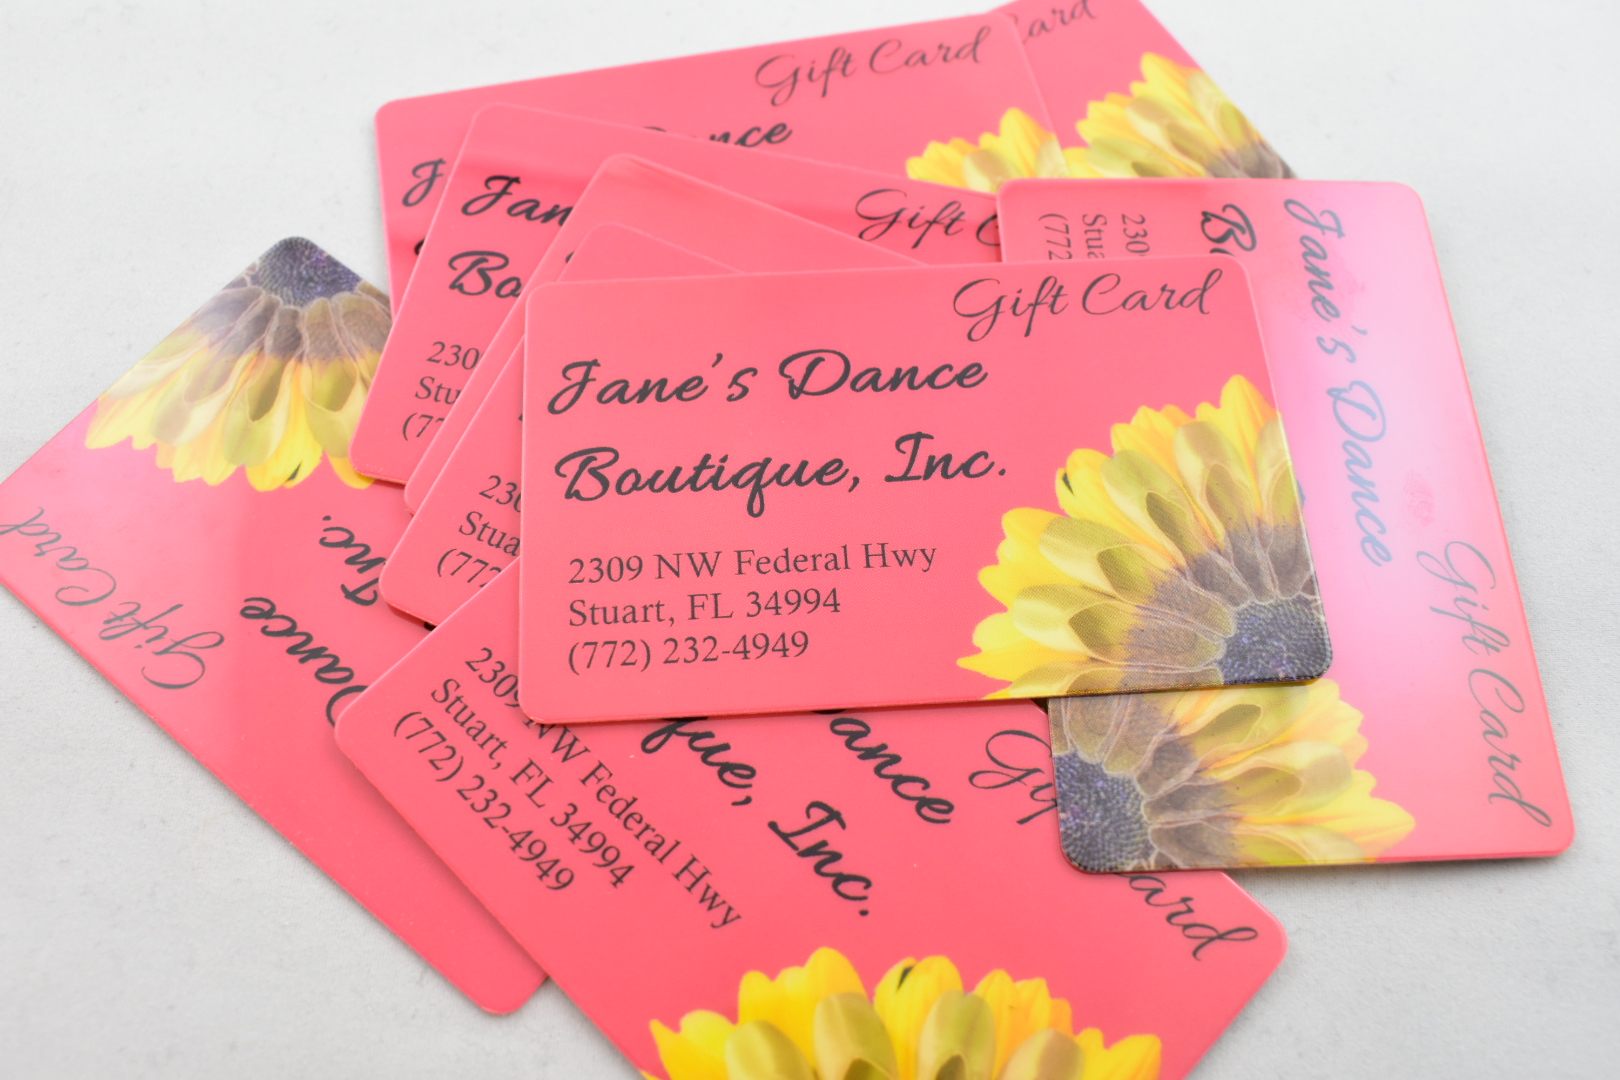 jane's dance boutique, stuart fl, dance wear, dance wear stuart fl, dance wear treasure coast, south florida dance wear, jazz shoes, tap shoes, ballet shoes, pointe shoes, ballet leotards, dance class, jazz pants, ballet clothes, dance clothes, dancers stuart fl, st lucie, palm city,